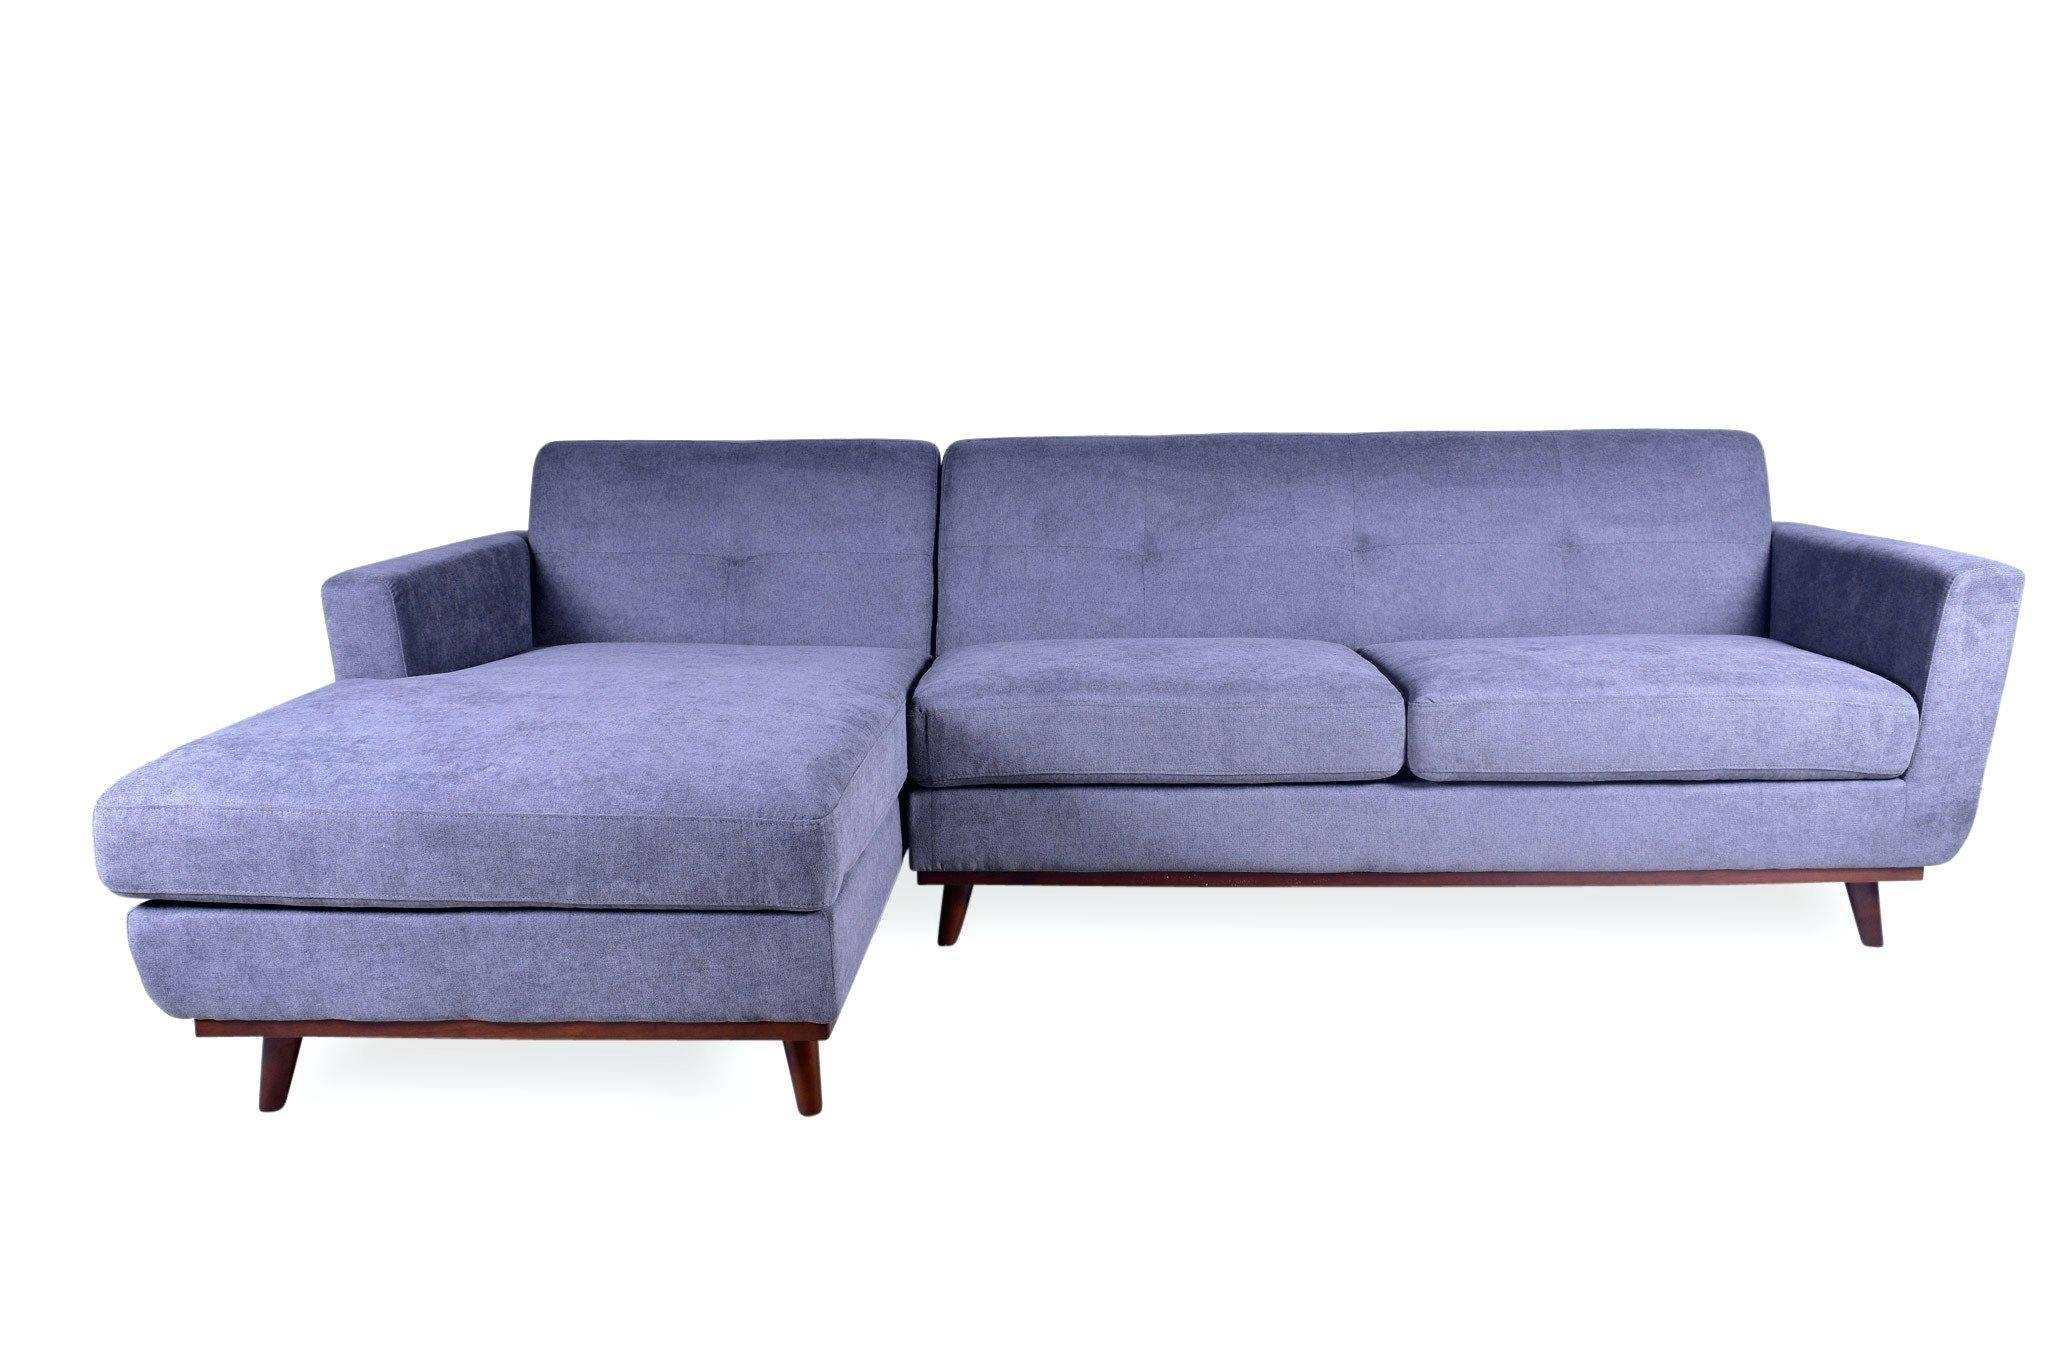 Modern Leather Furniture Miami Sectional Sofas Atlanta For Small Inside Small Modern Sofas (View 7 of 15)